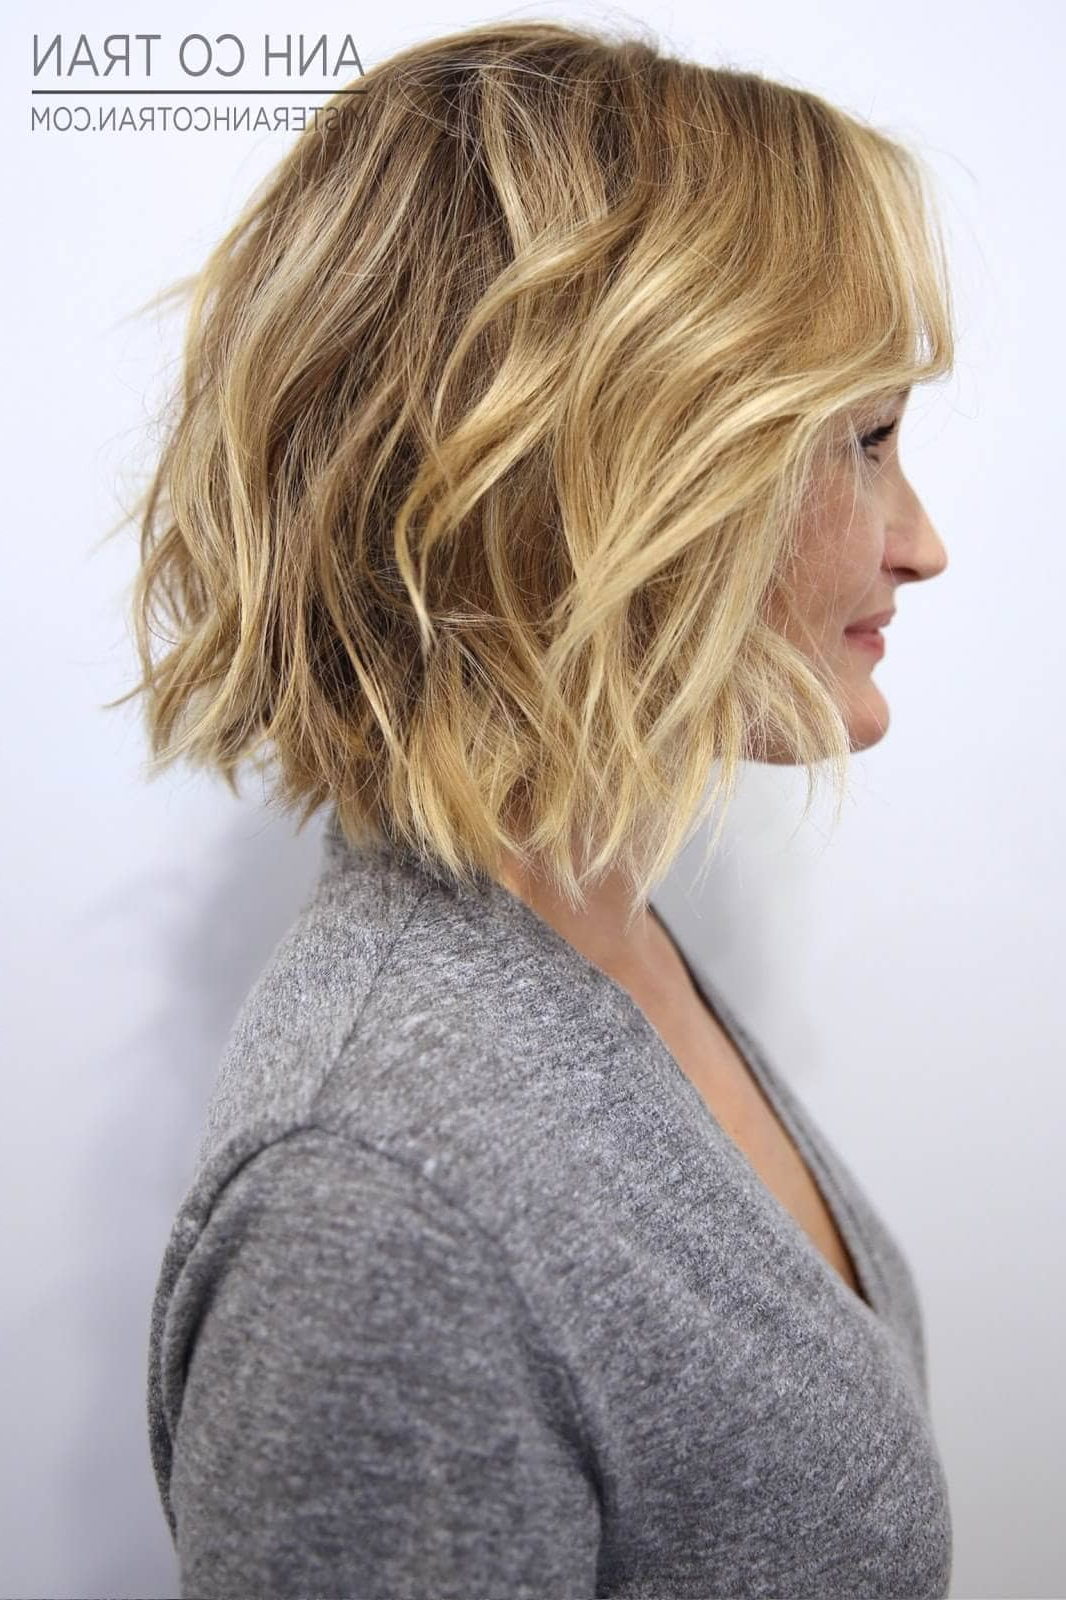 50 Ways To Wear Short Hair With Bangs For A Fresh New Look For Favorite Long Layered Waves And Cute Bangs Hairstyles (View 15 of 20)